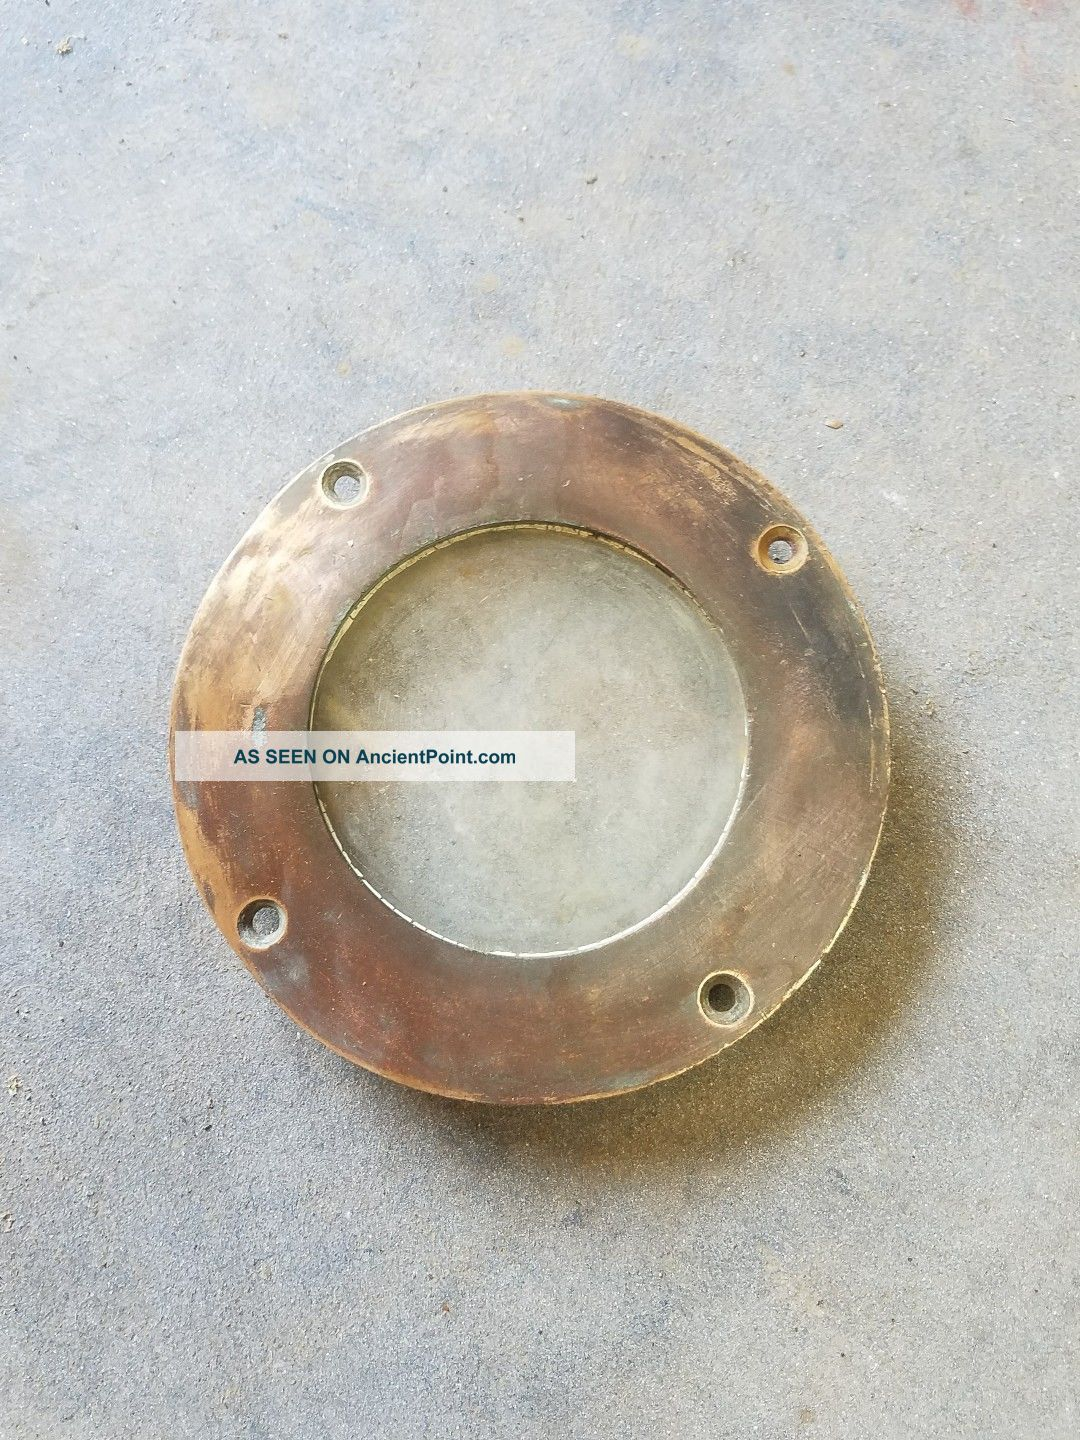 Vintage Bronze Porthole Sailboat Powerboat Marine Deck Hardware Antique 1960 Portholes photo